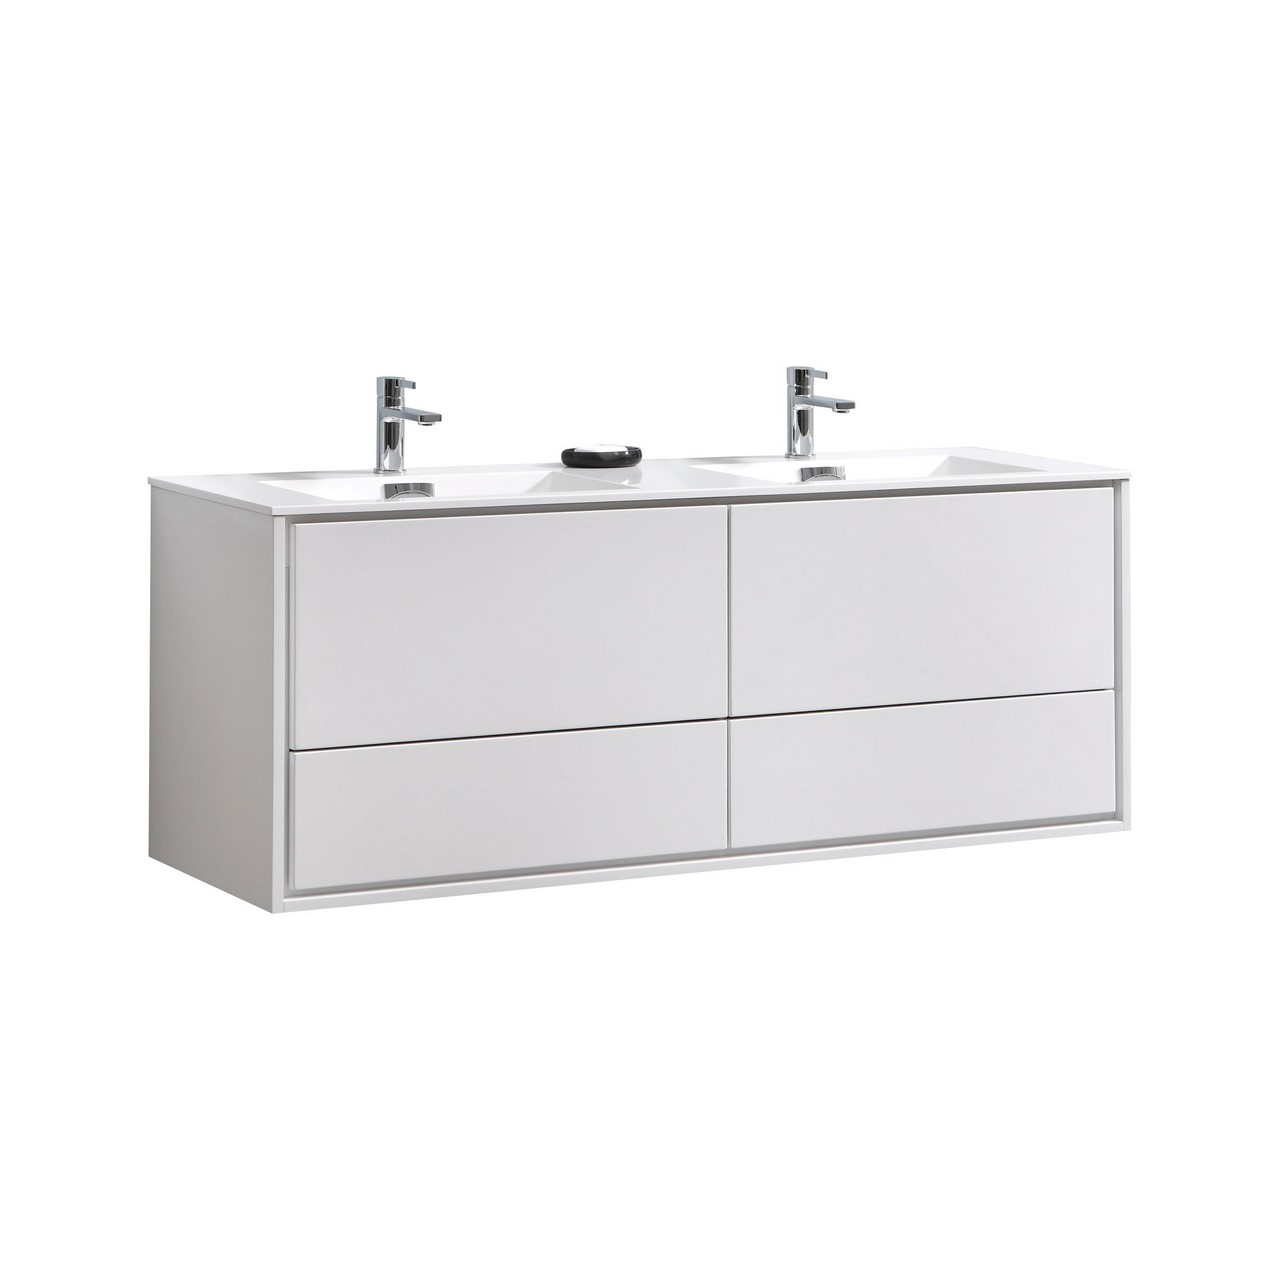 De lusso 60 double sink high glossy white wall mount modern bathroom vanity kubebath - Modern bathroom vanity double sink ...